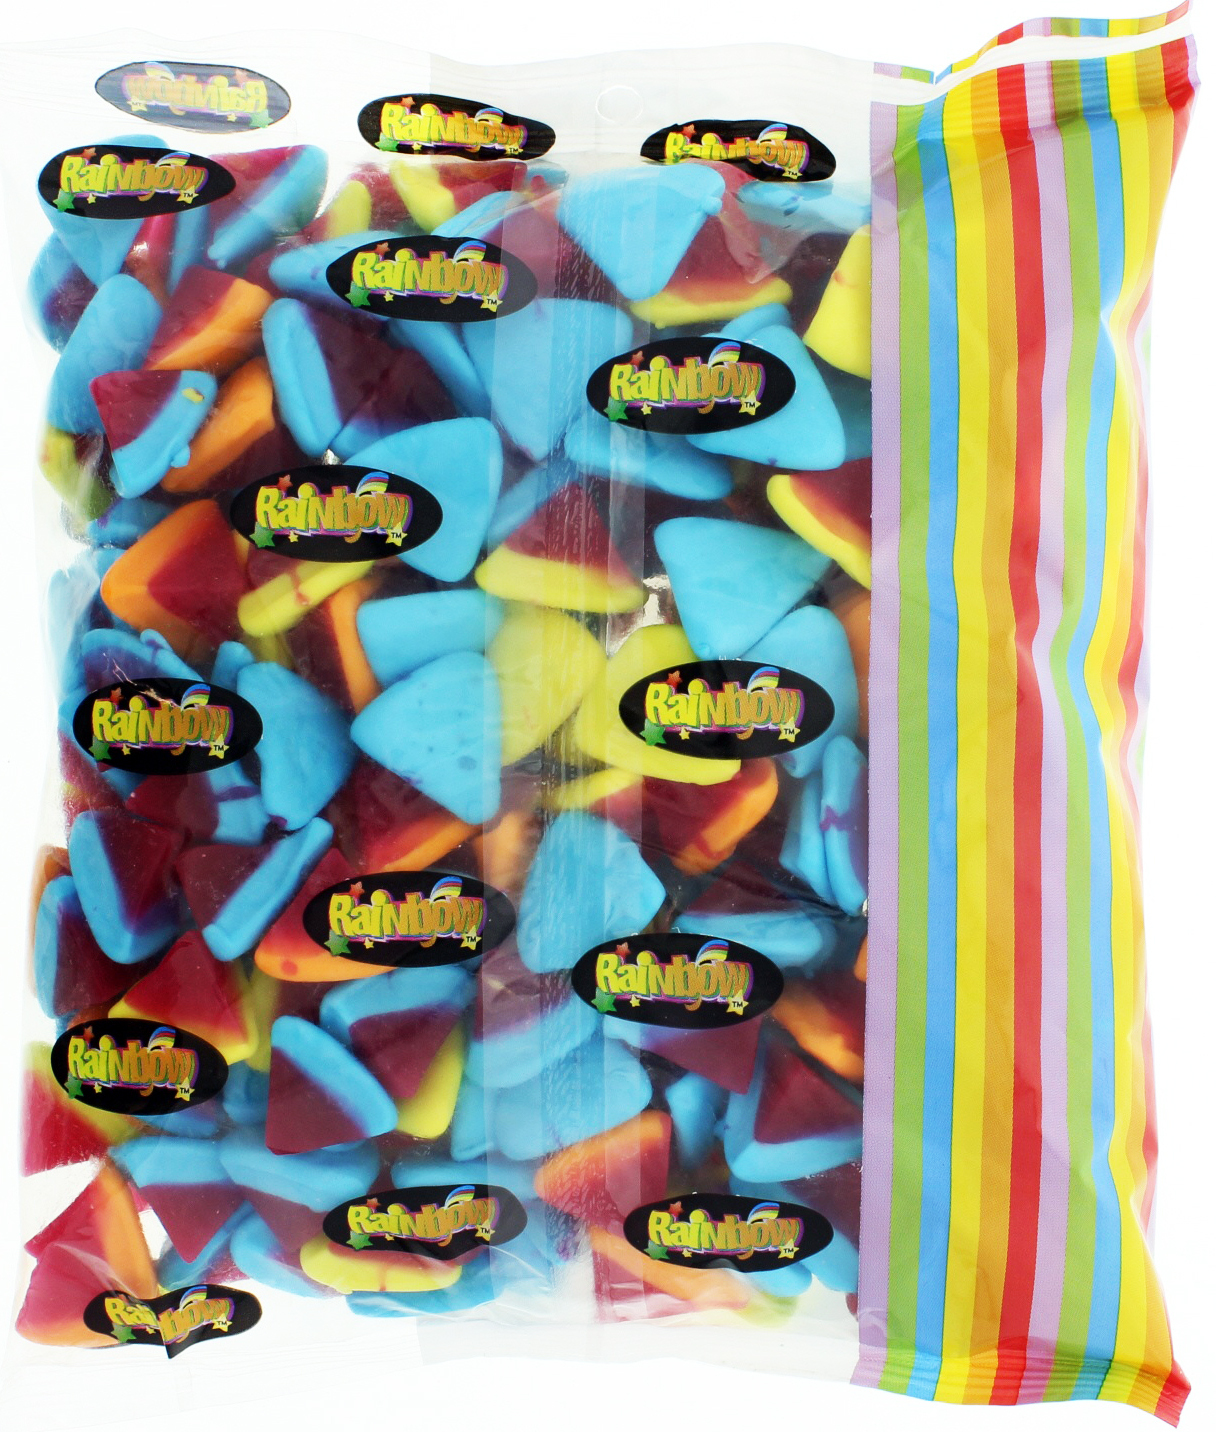 Rainbow Confectionery Multi Volcanoes Lollies Bulk Bag 1kg image